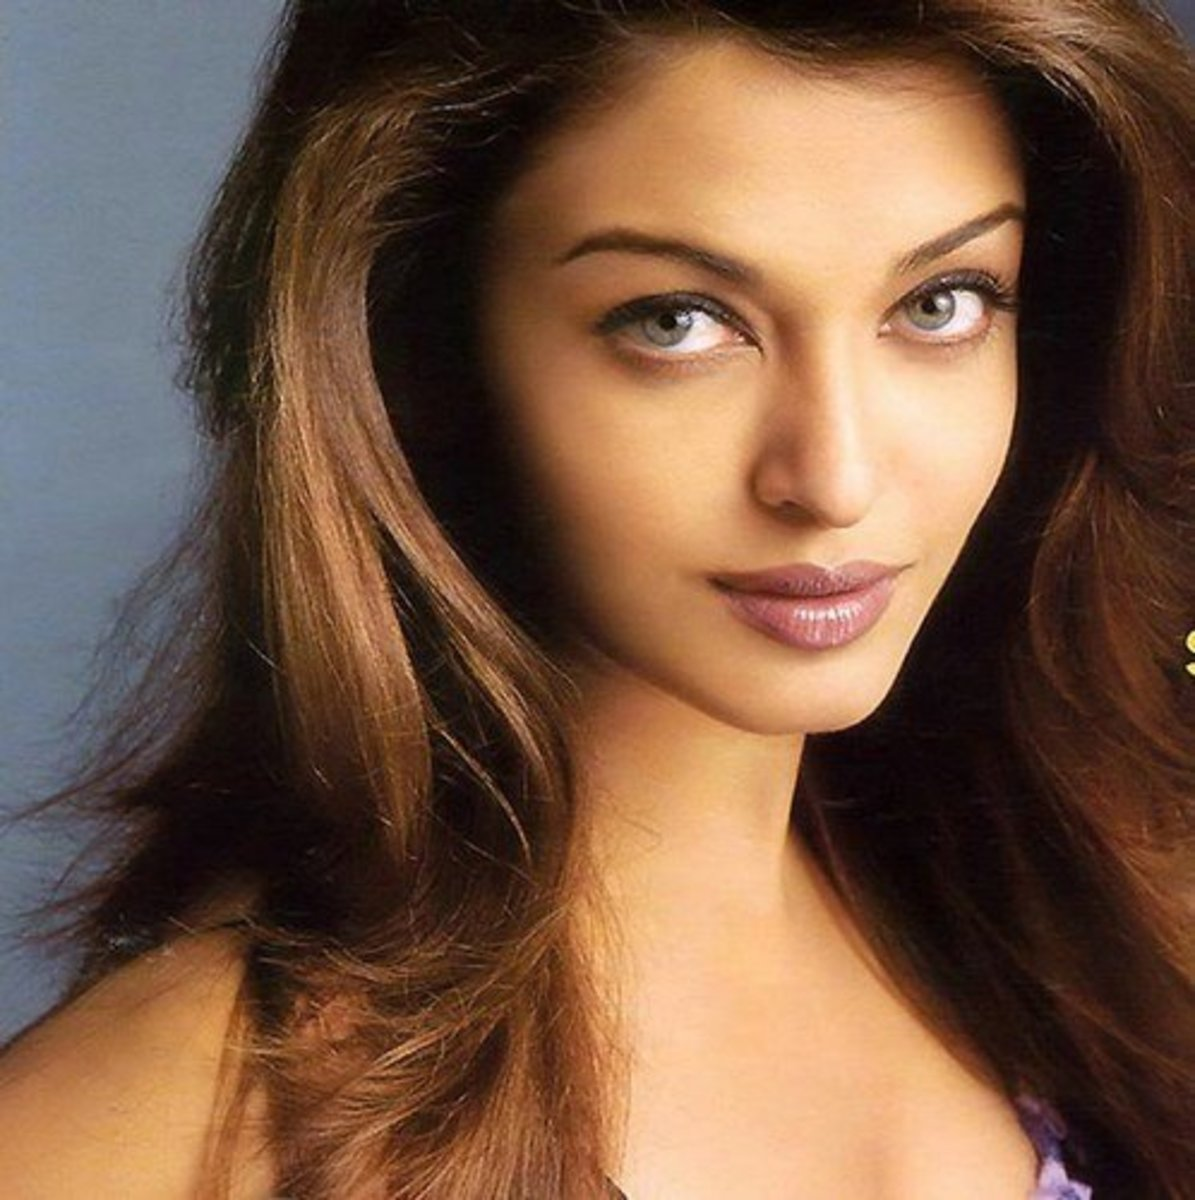 Beautiful Indian Bollywood Actress All Time: The Most Popular Bollywood Actress Is...